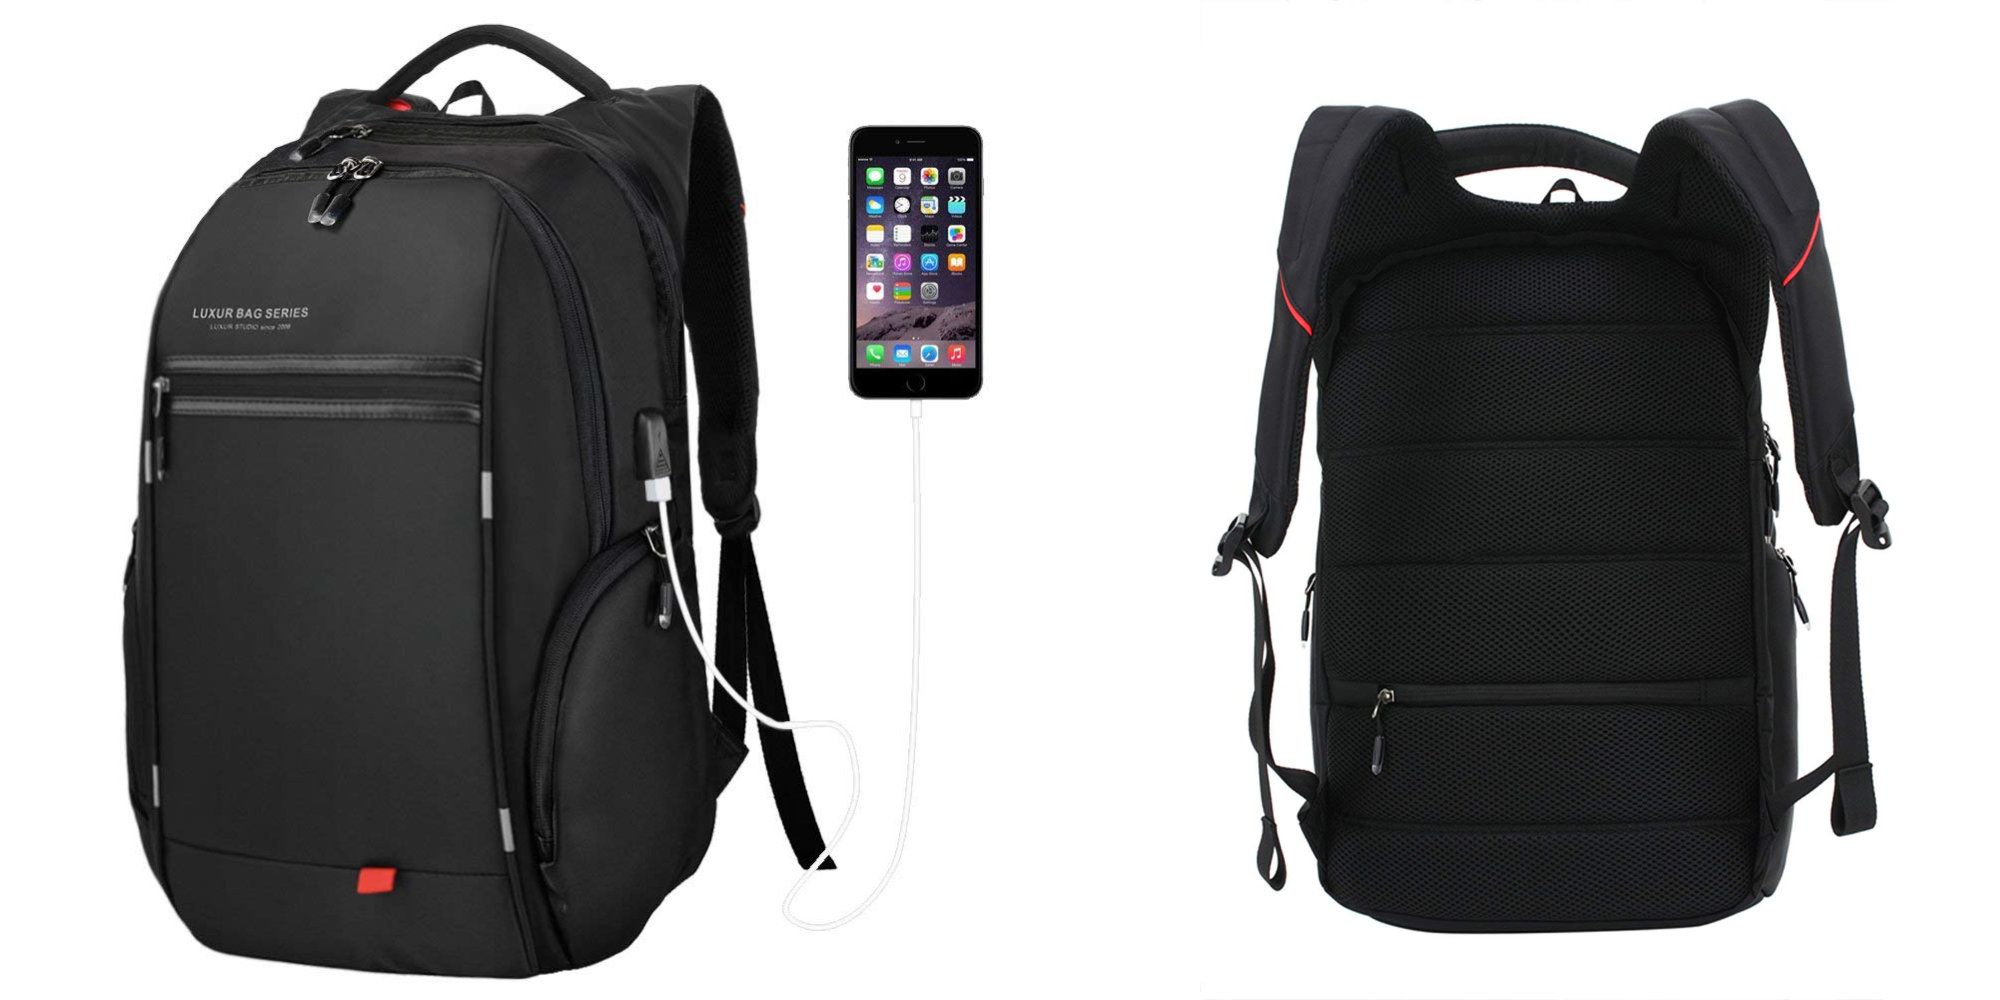 This backpack has a USB port and room for a 15-inch MacBook, iPad, more: $16.50 (55% off)